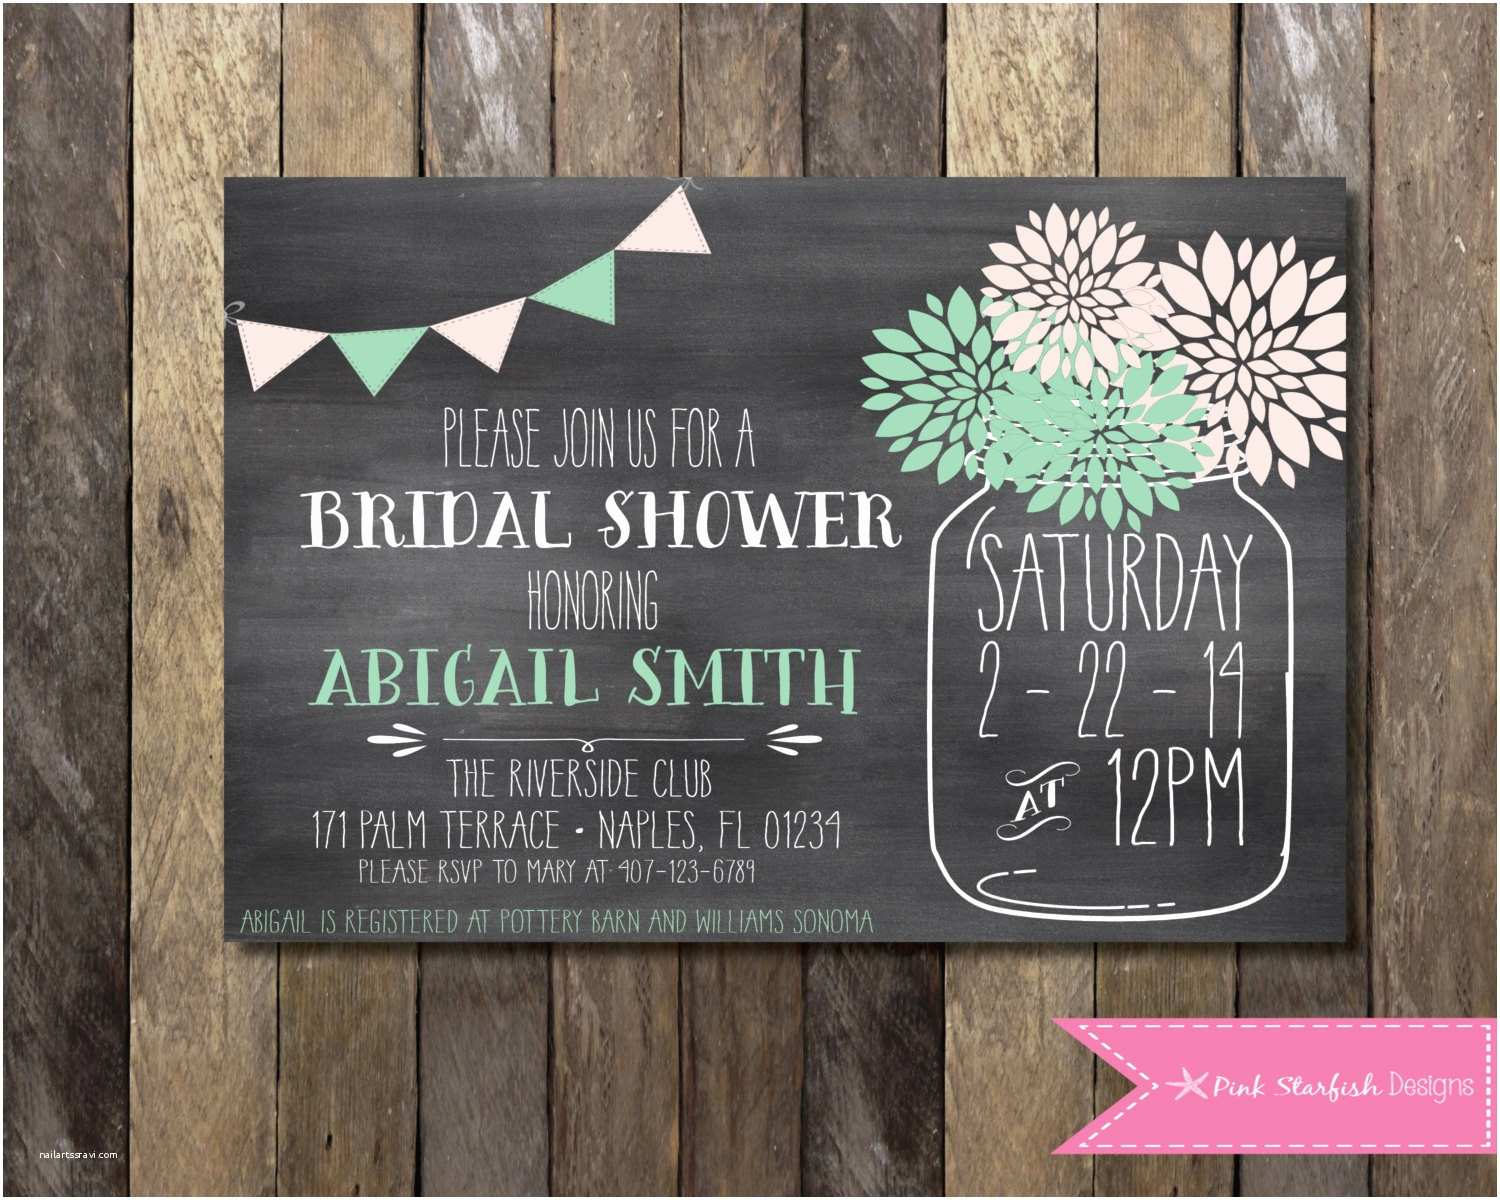 Chalkboard Bridal Shower Invitations Bridal Shower Invitation Chalkboard Invitation Chalkboard